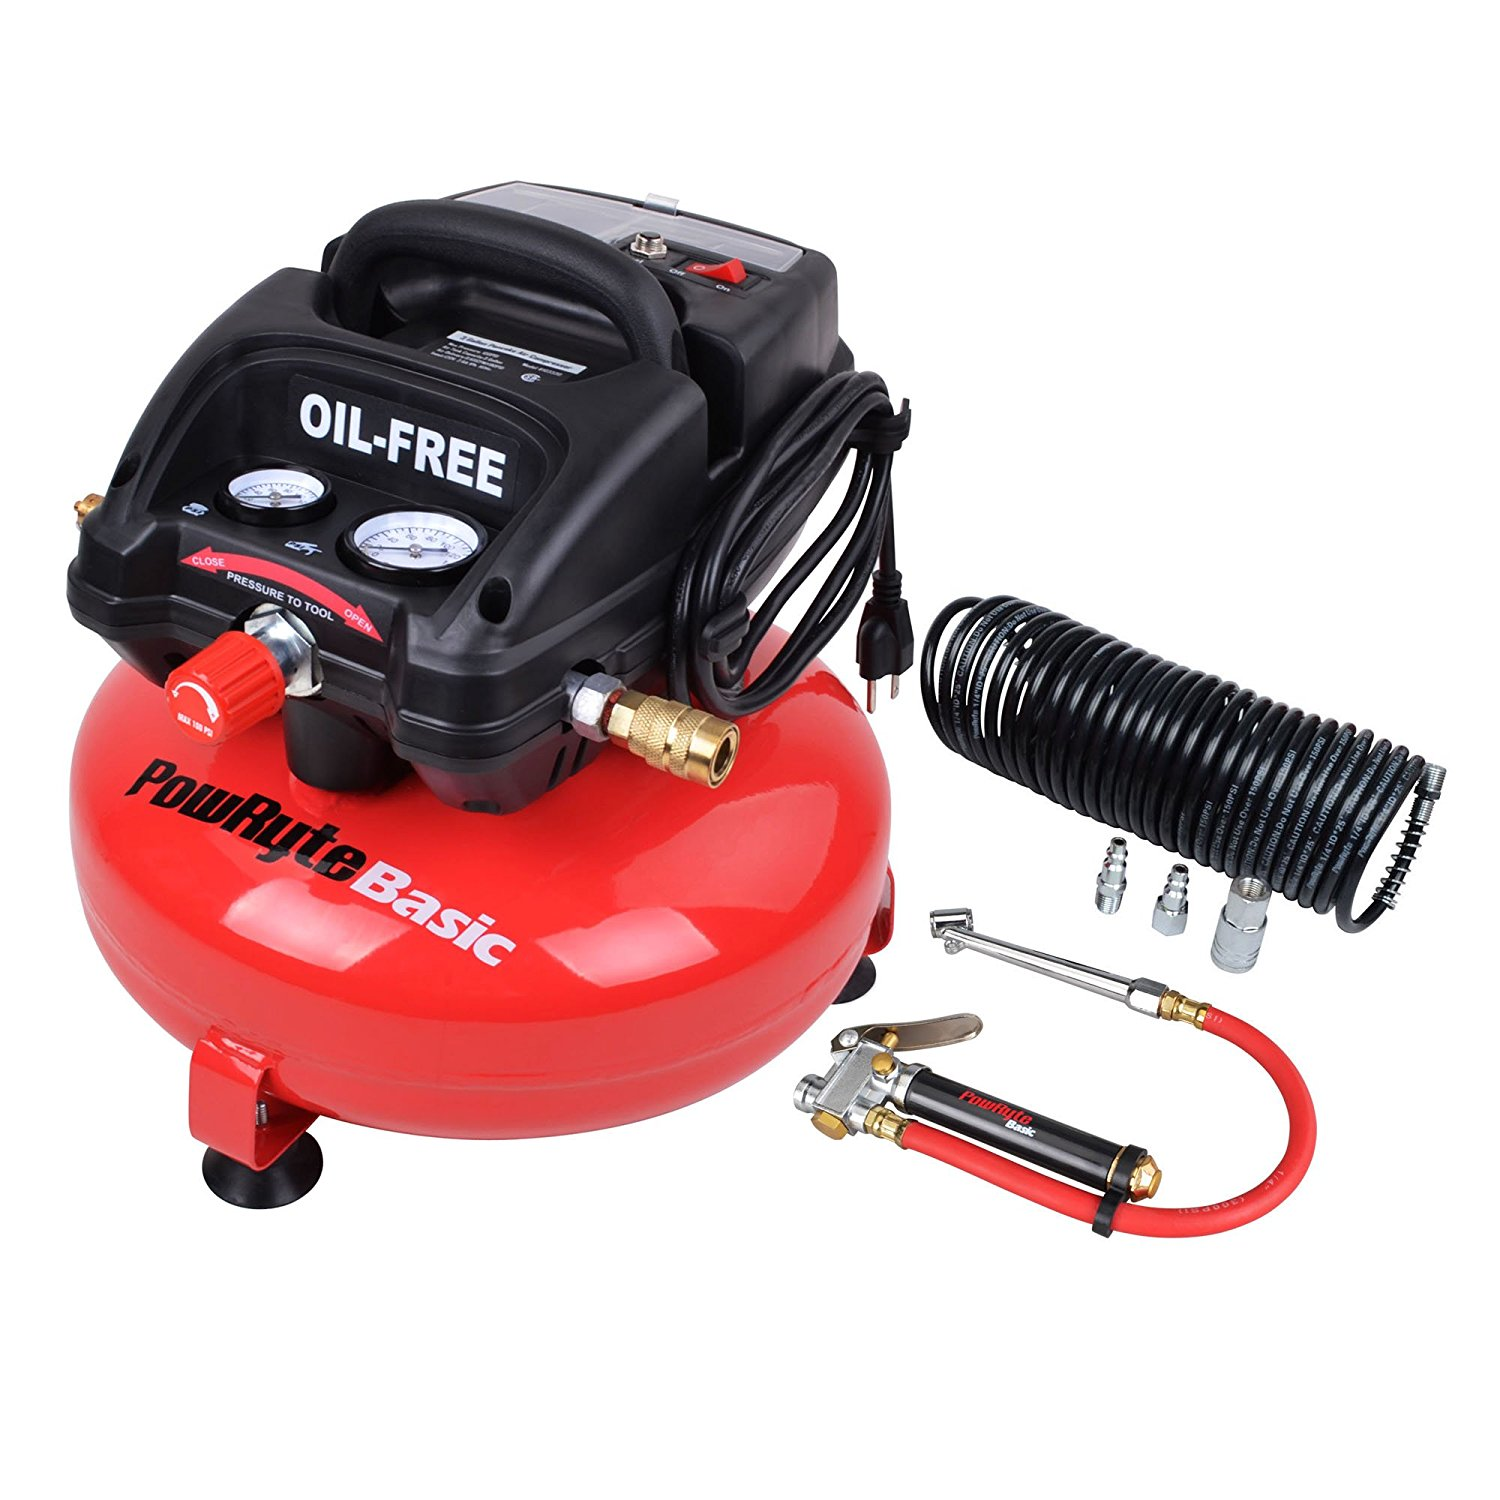 Best Pancake Air Compressor – Reviews and Buying Guide